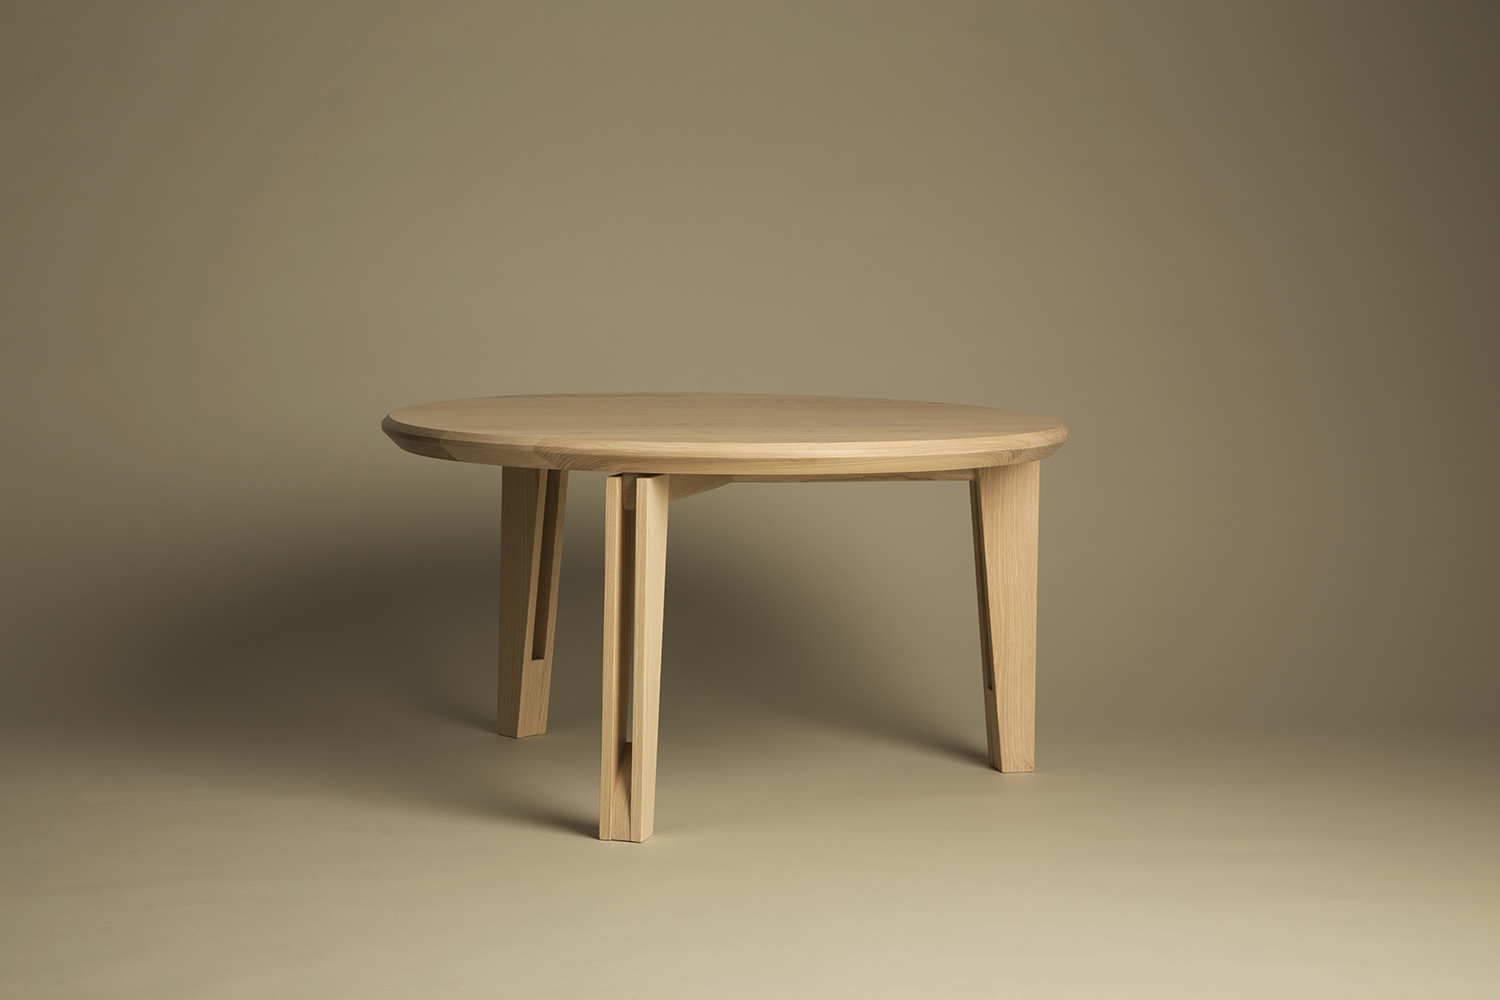 Brace Coffee Table by Alan Flannery Furniture Design L2.jpg